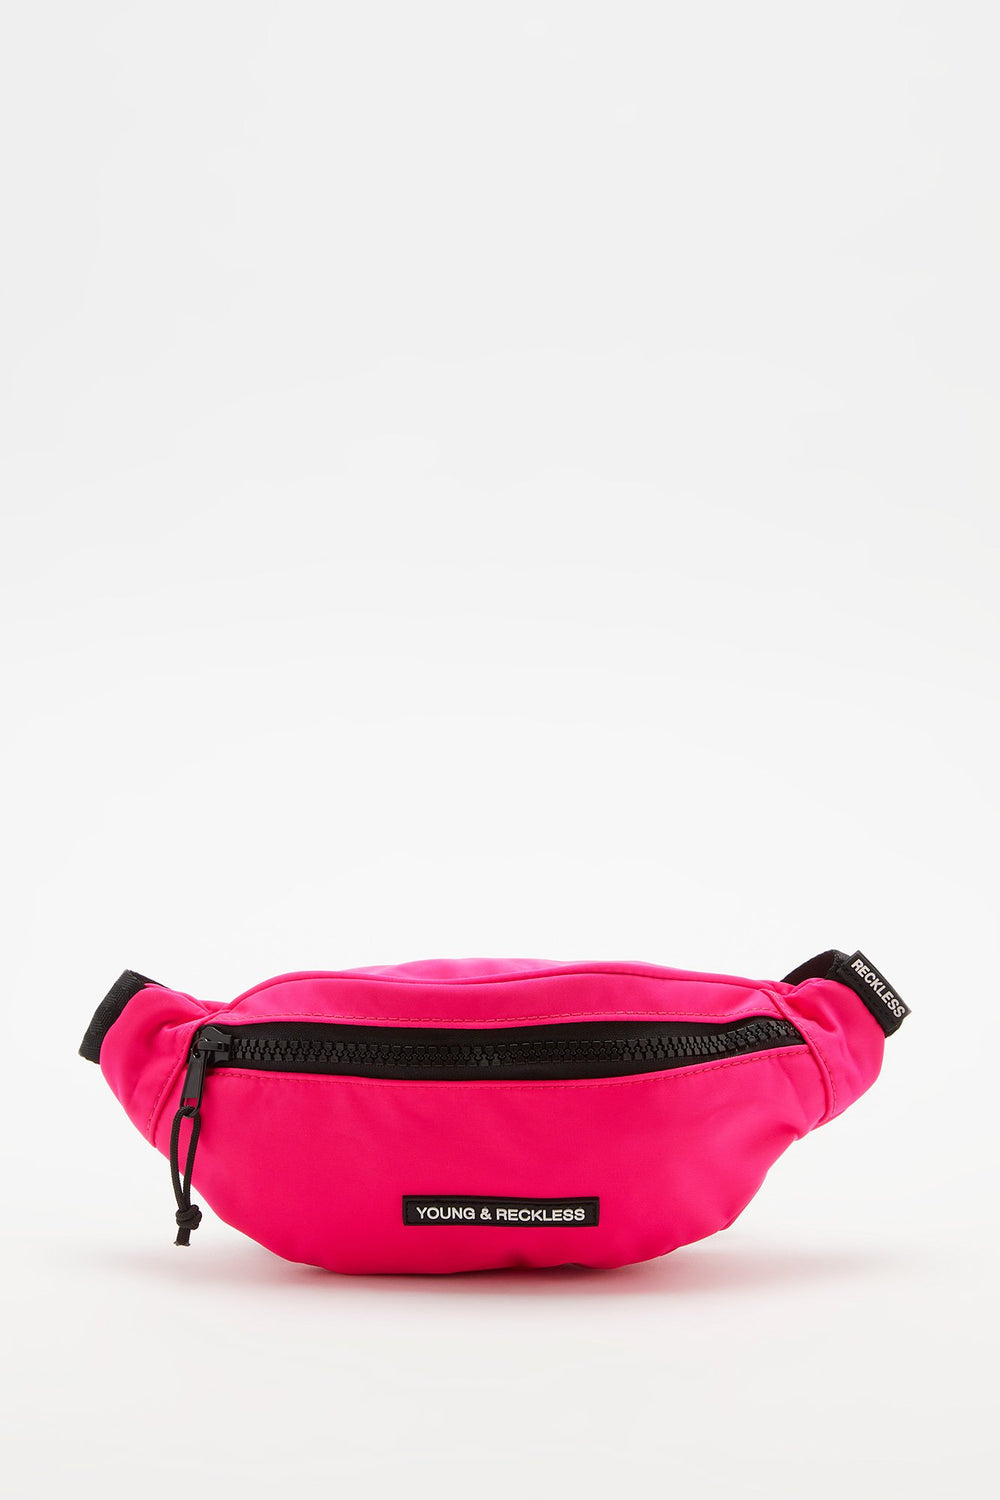 Young & Reckless Neon Fanny Pack Pink